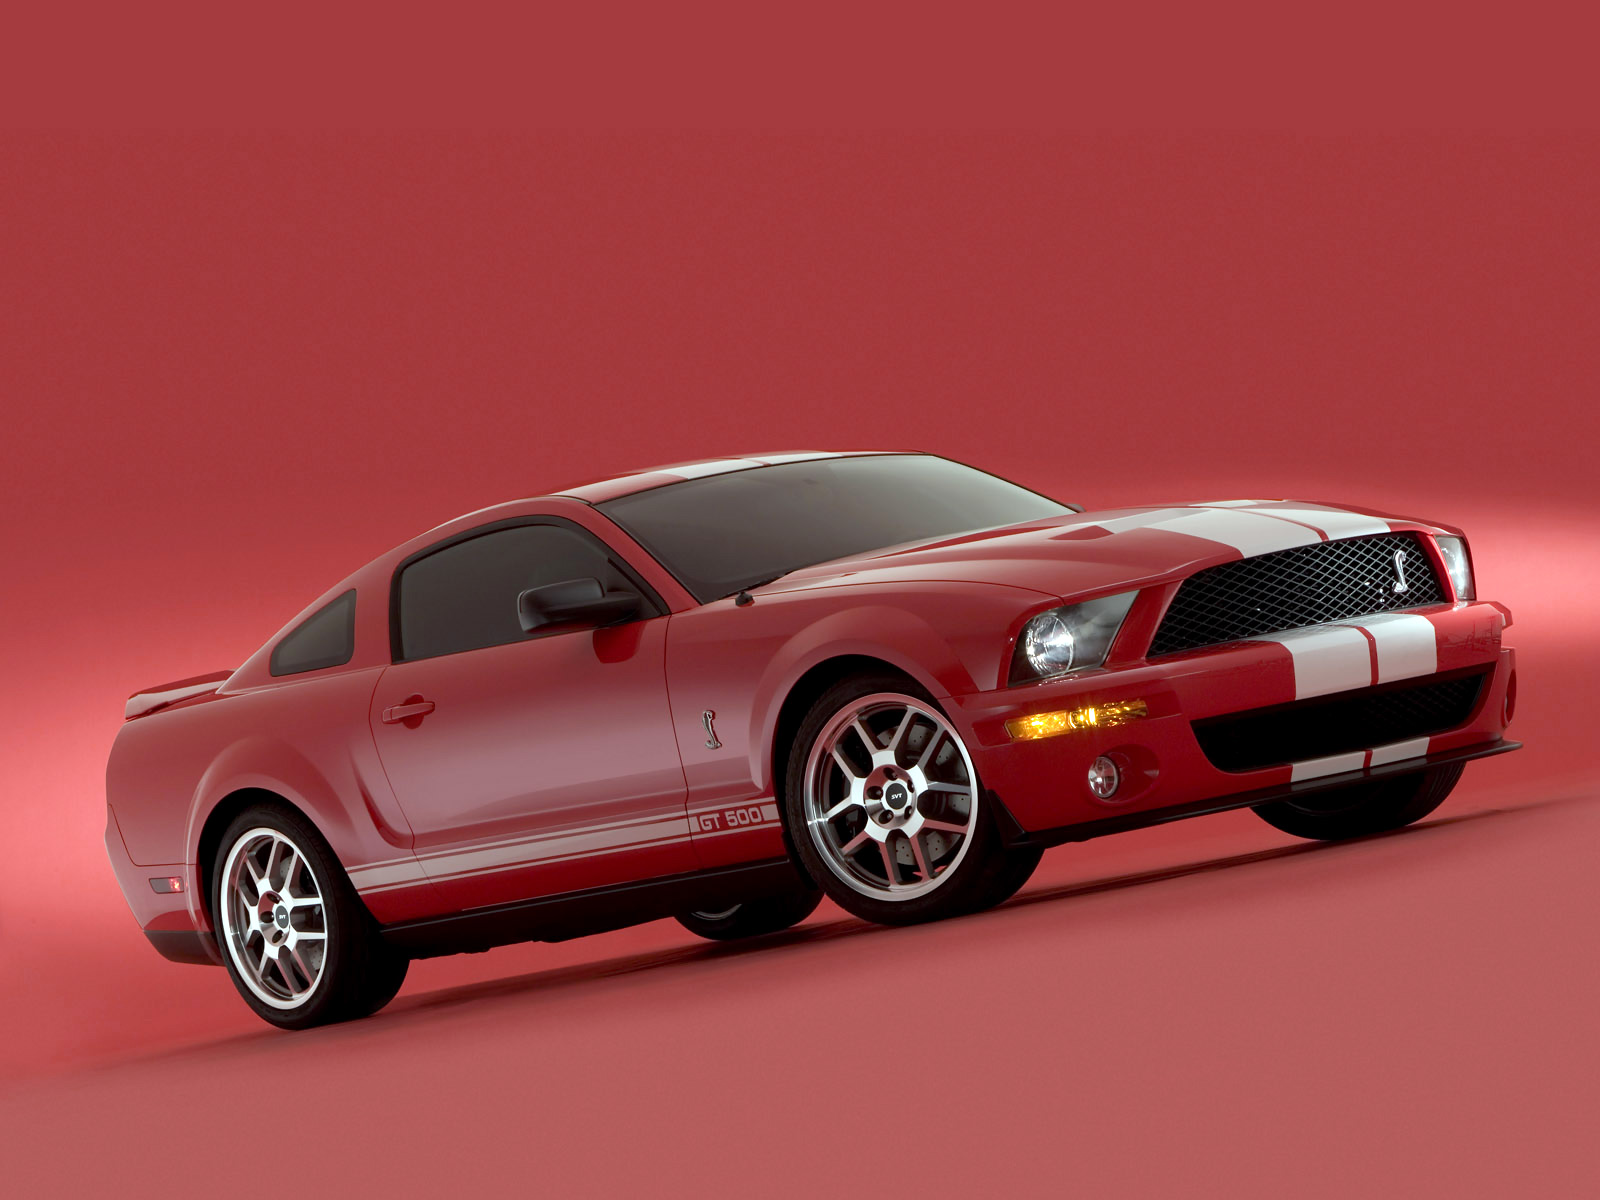 Ford Mustang 2009 photo - 7